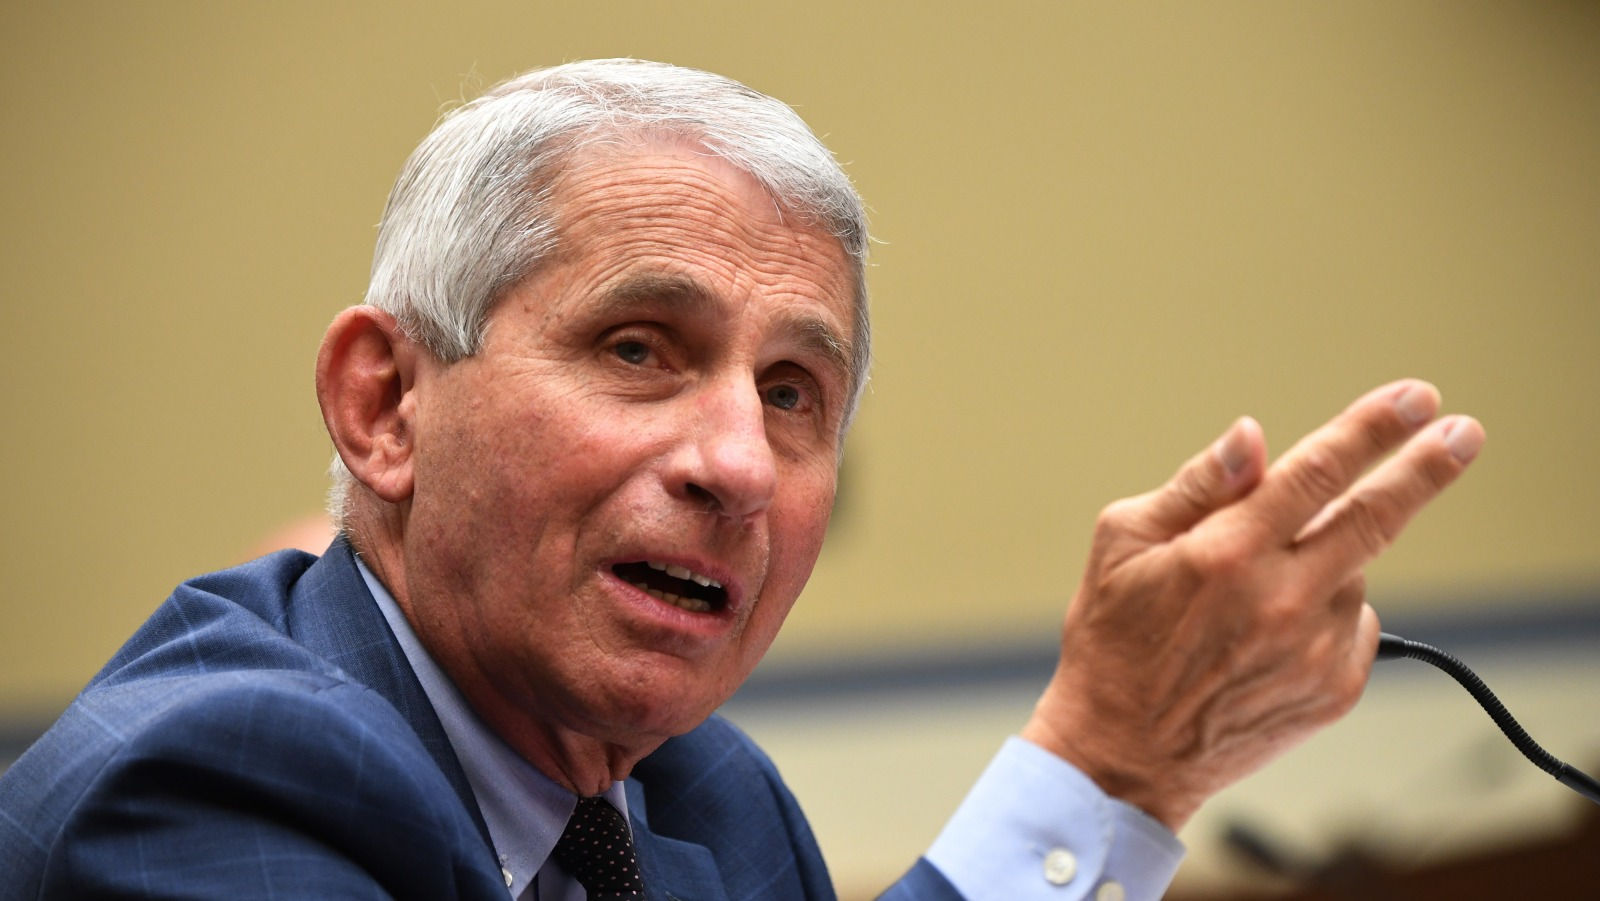 The Brainlessly Educated: How the Ongoing COVID-19 Plandemic and Dr. Fauci's Emails Unmasked America's Real Plague of Blind Stupidity and Submissive Sheeple